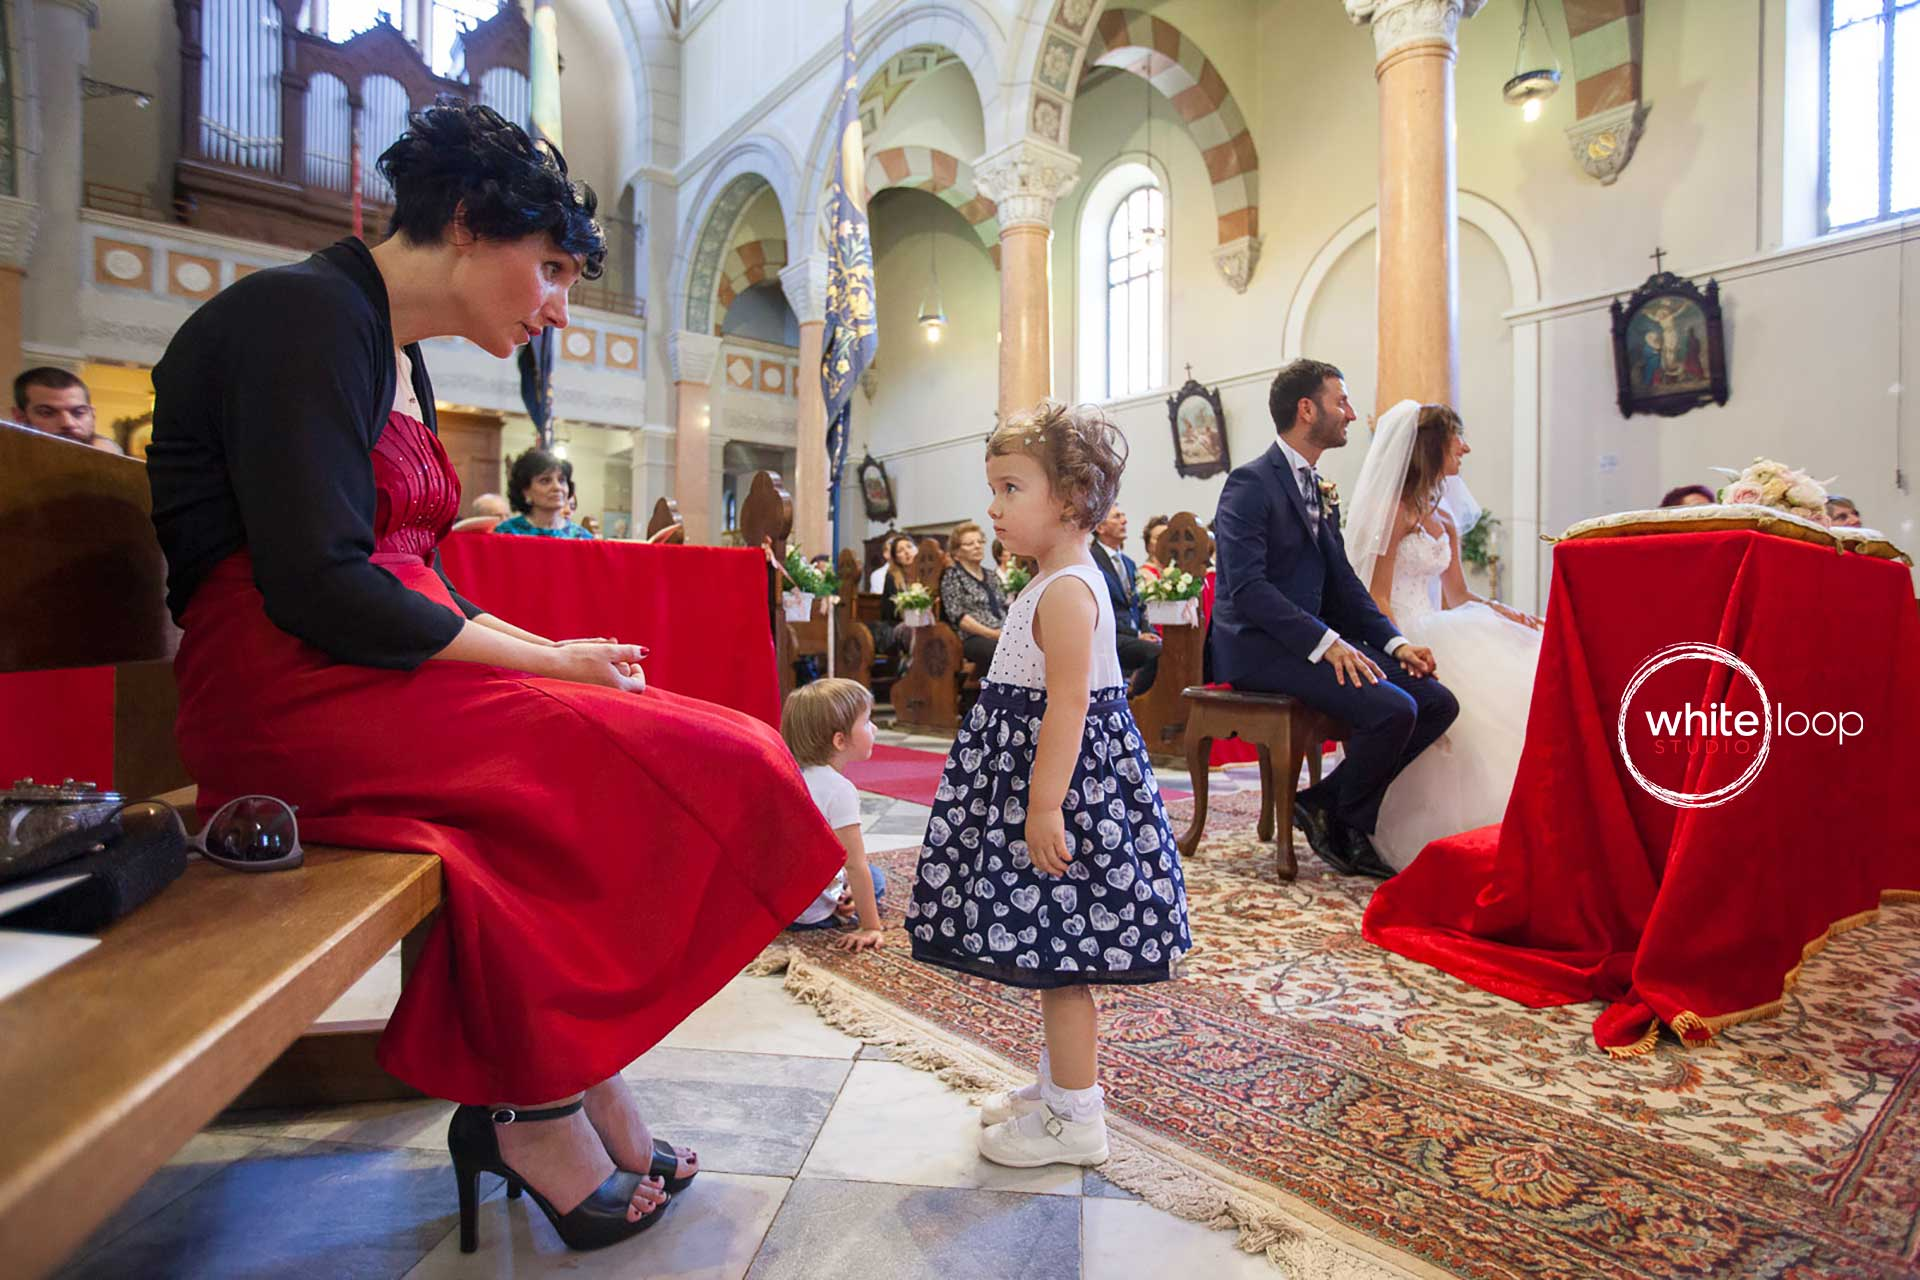 Here is a little girl being blamed by one of the bridesmaids while the ceremony is held